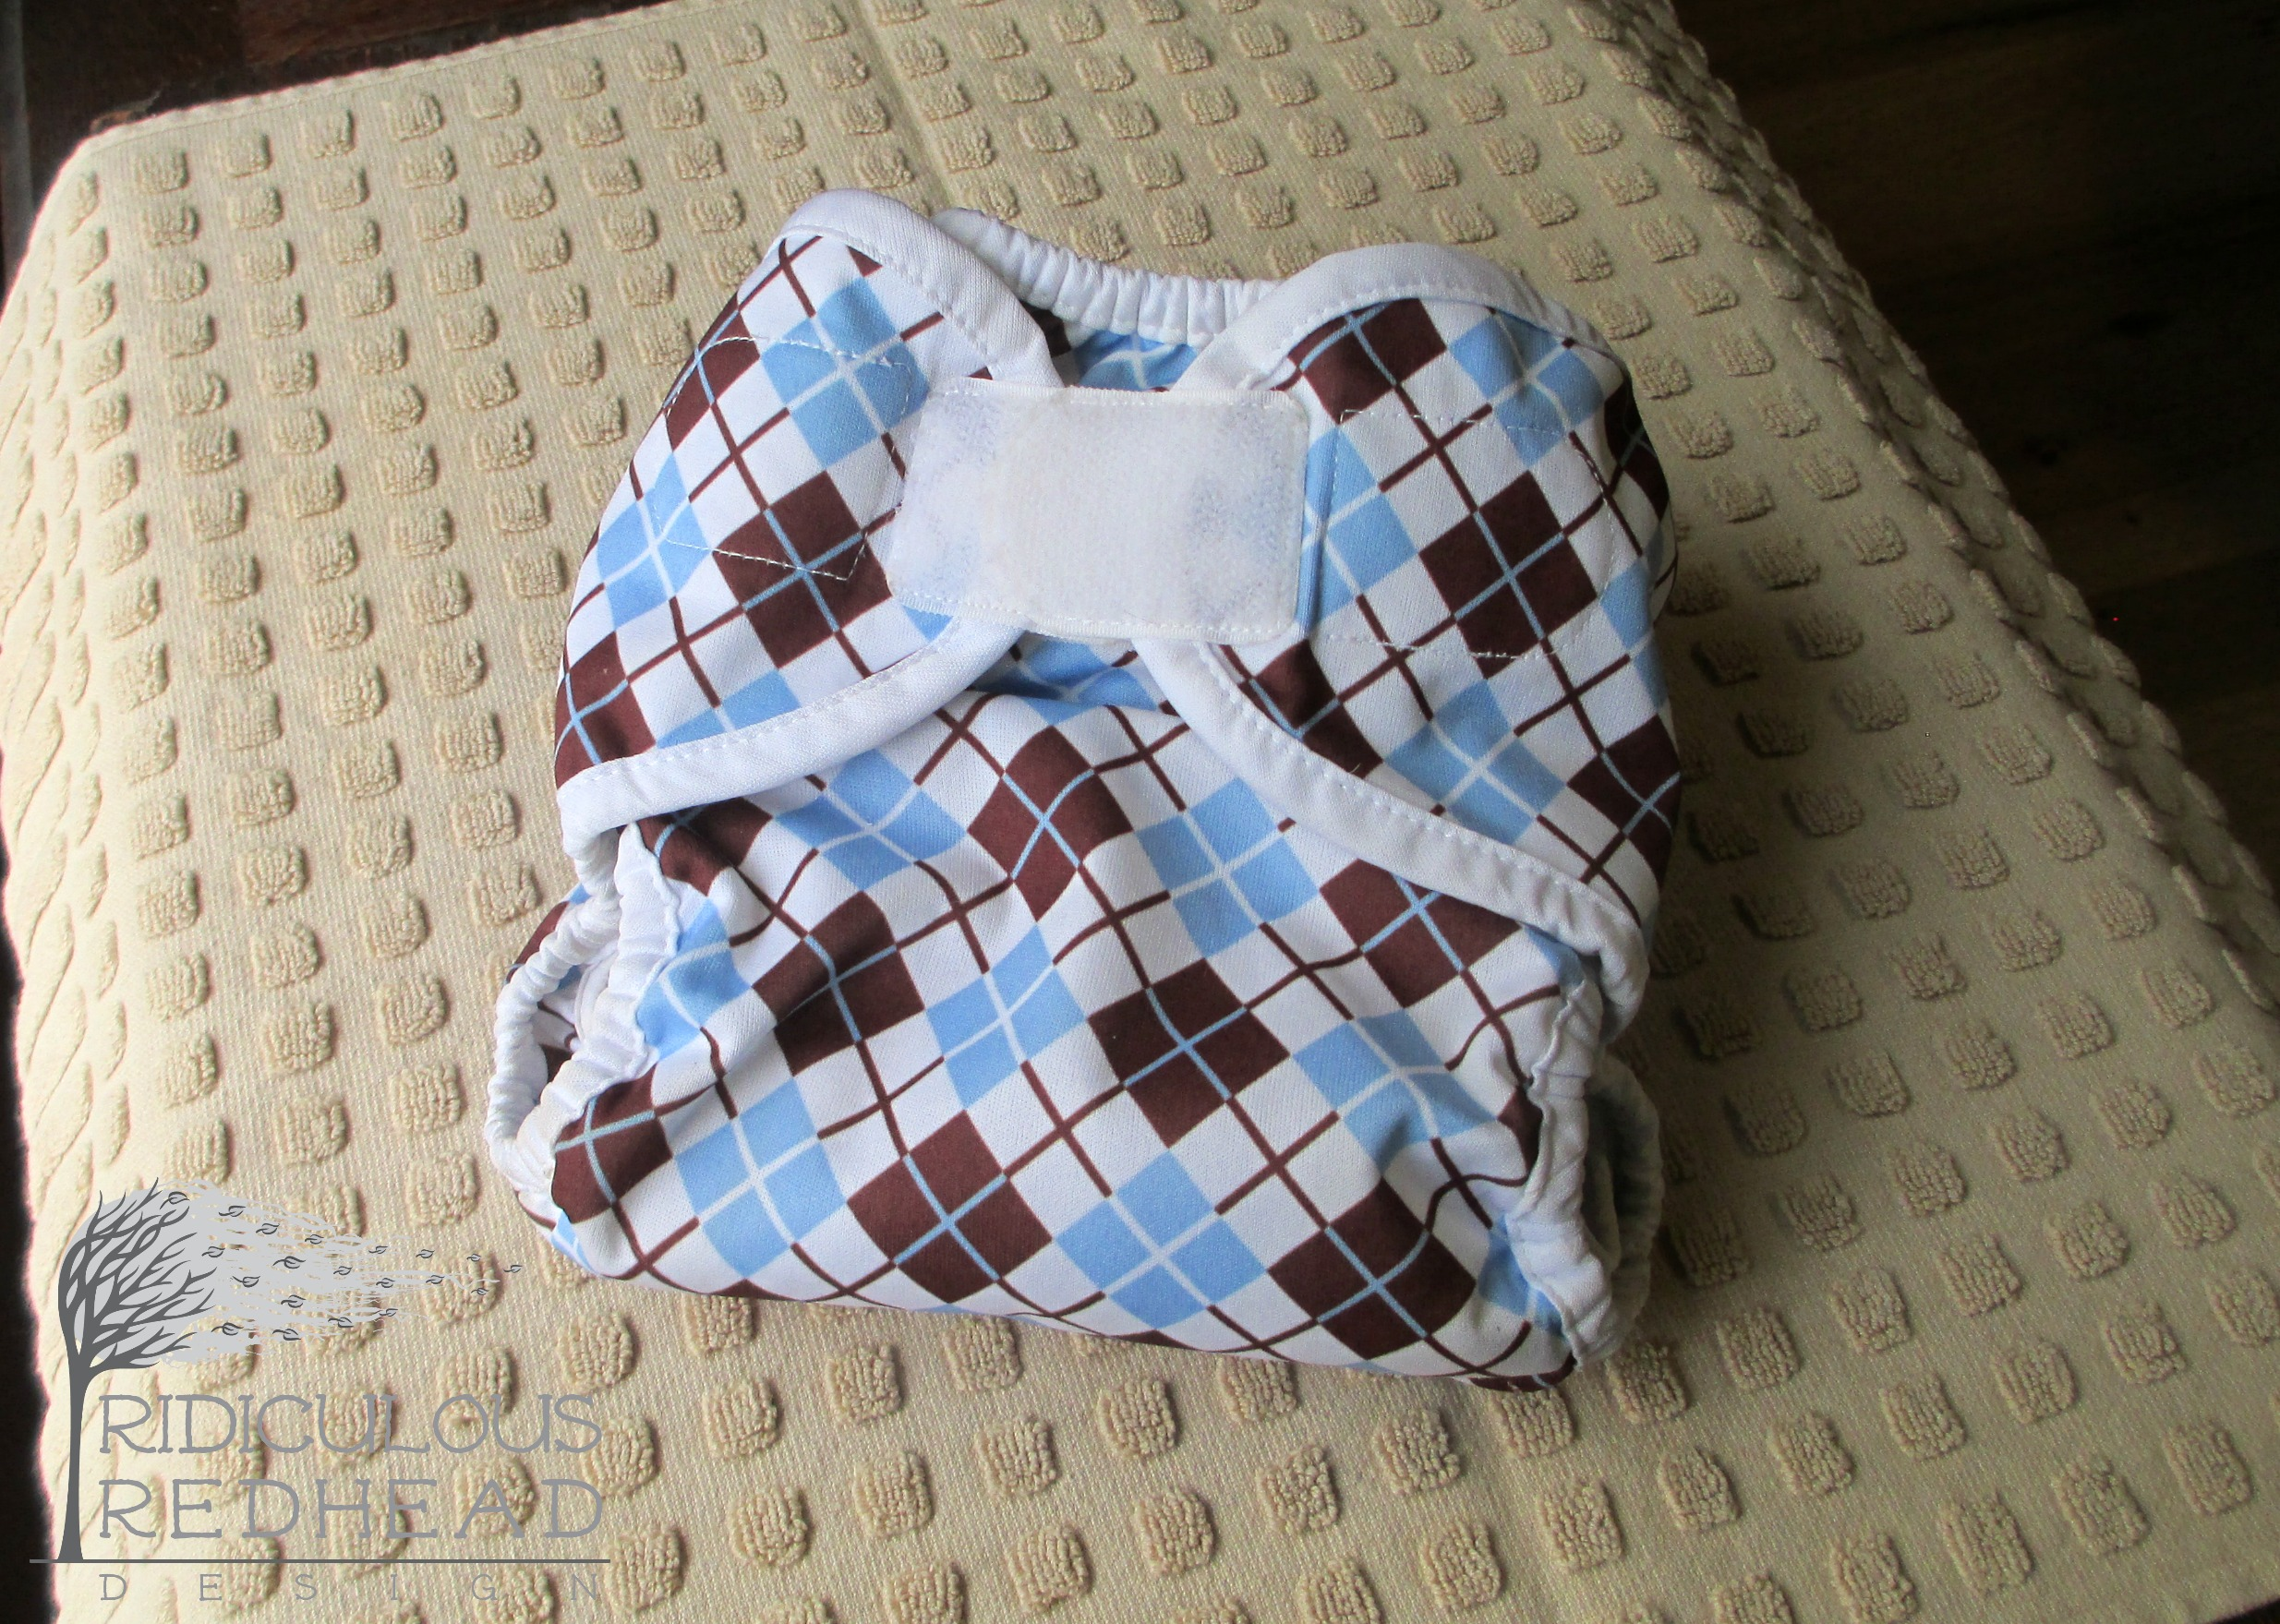 cloth diaper cover ridiculous redhead